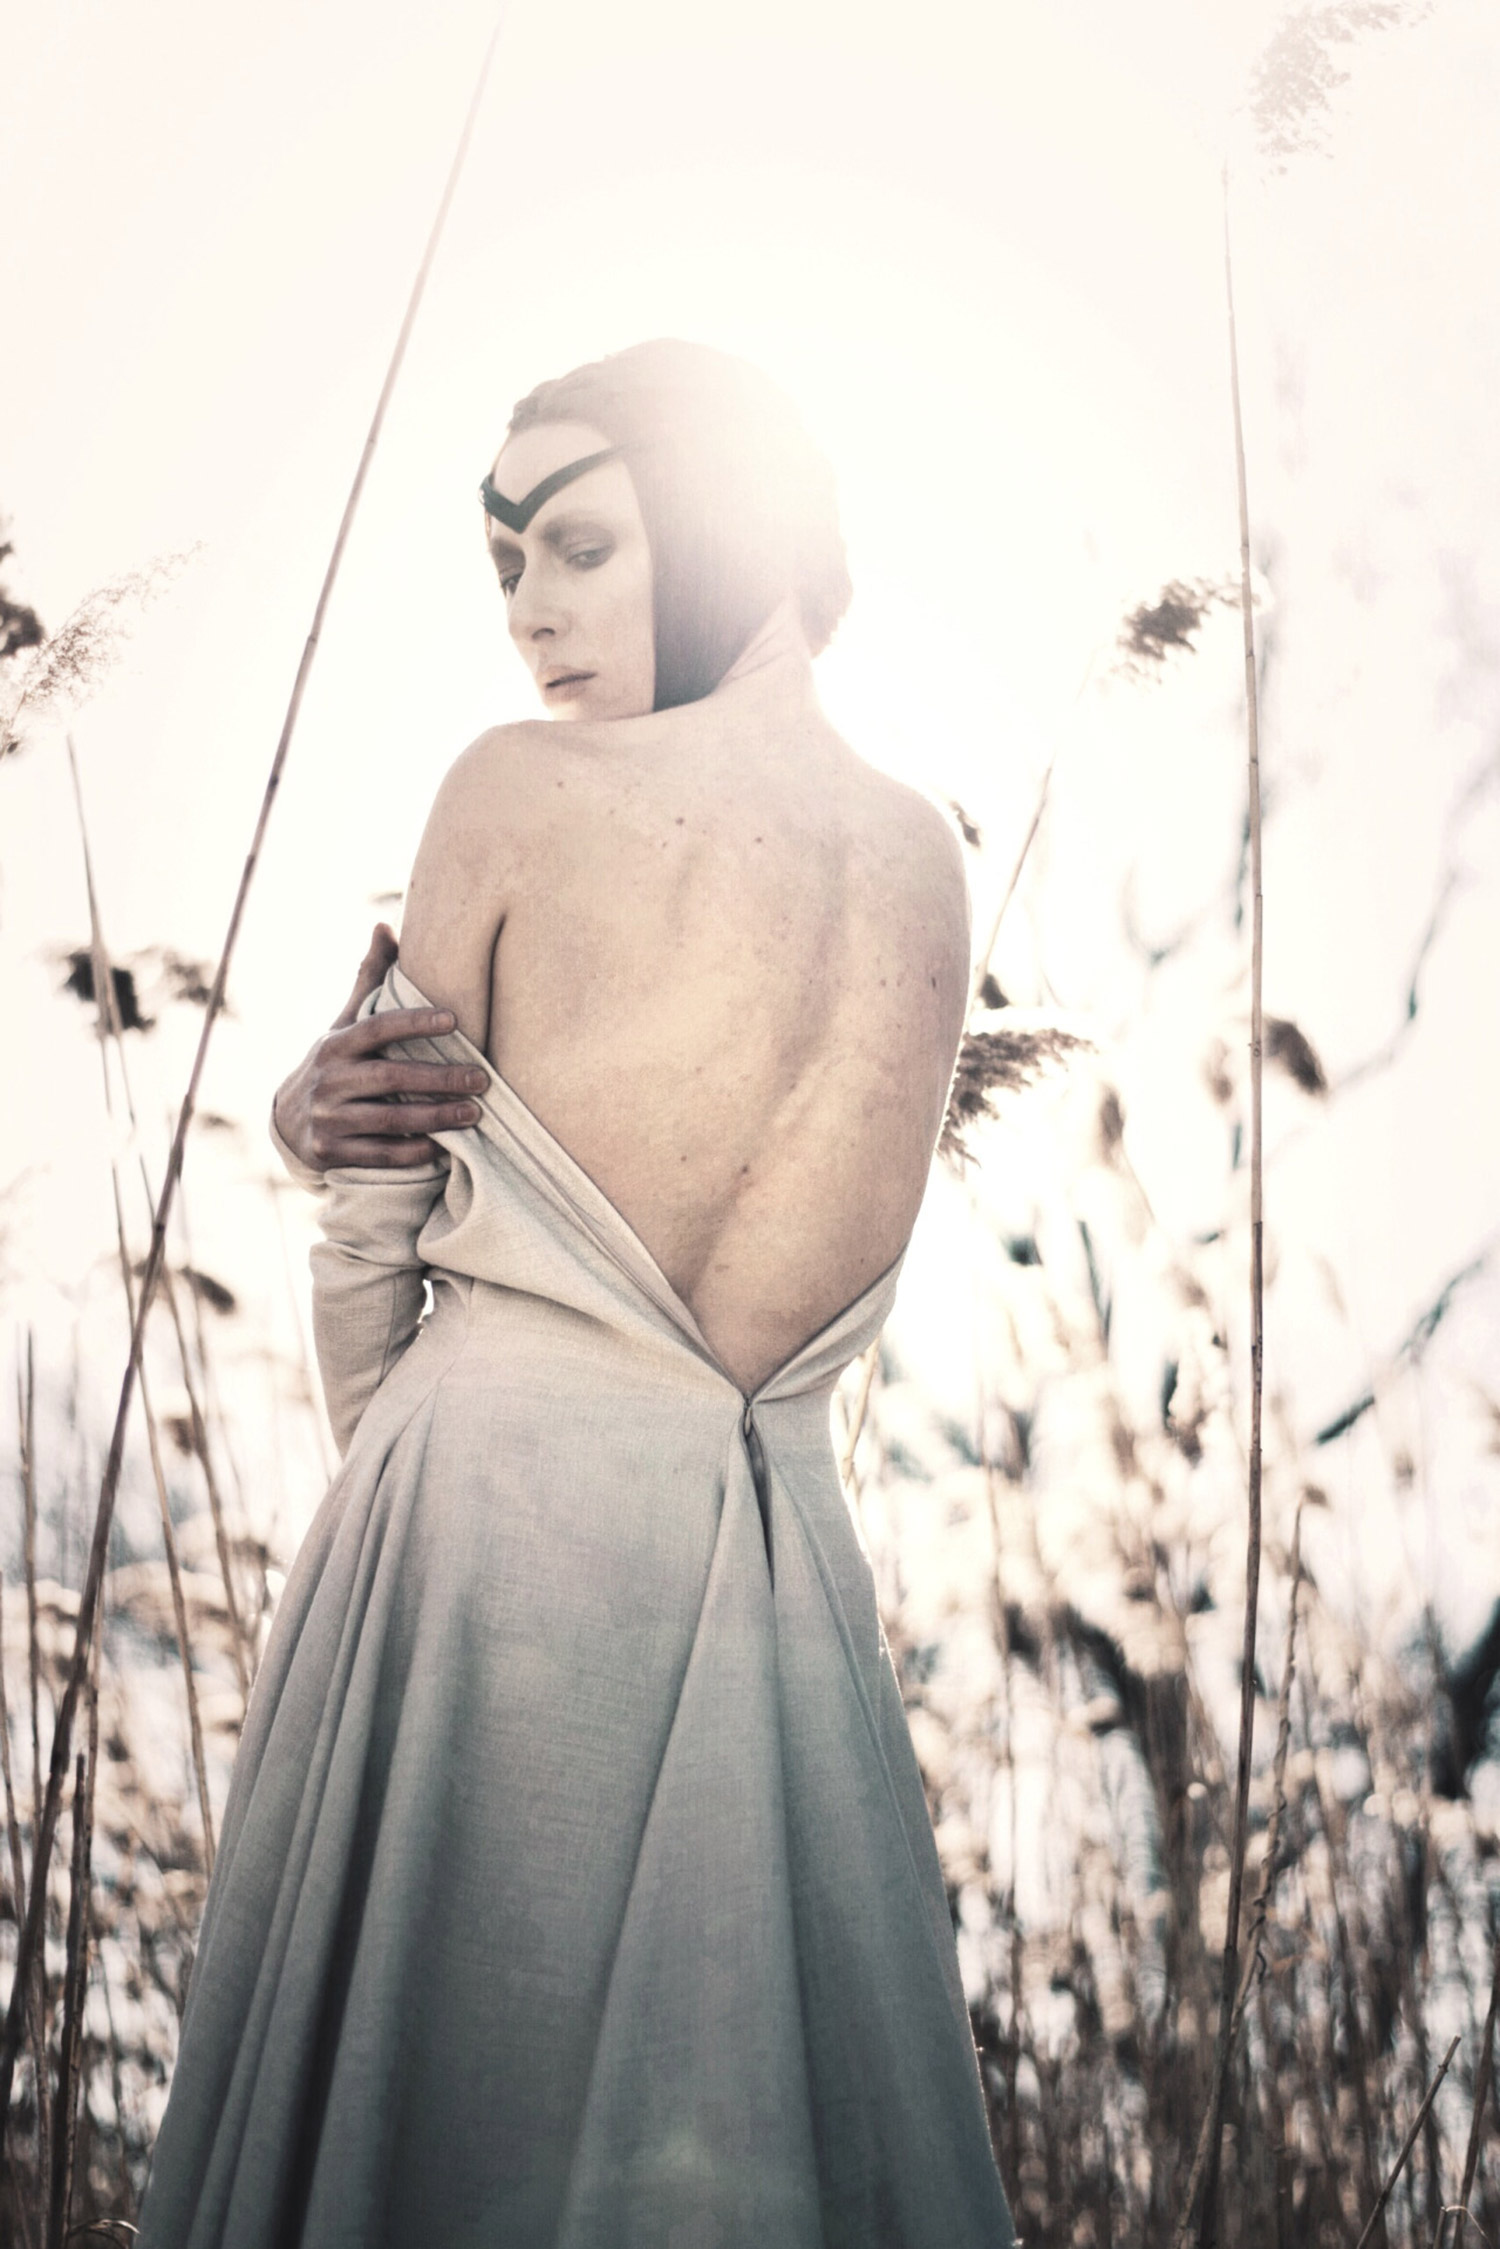 Hogan Mclaughlin - Upon the Heath of Bedlam, photographer Bill Crisafi, white dress with open back